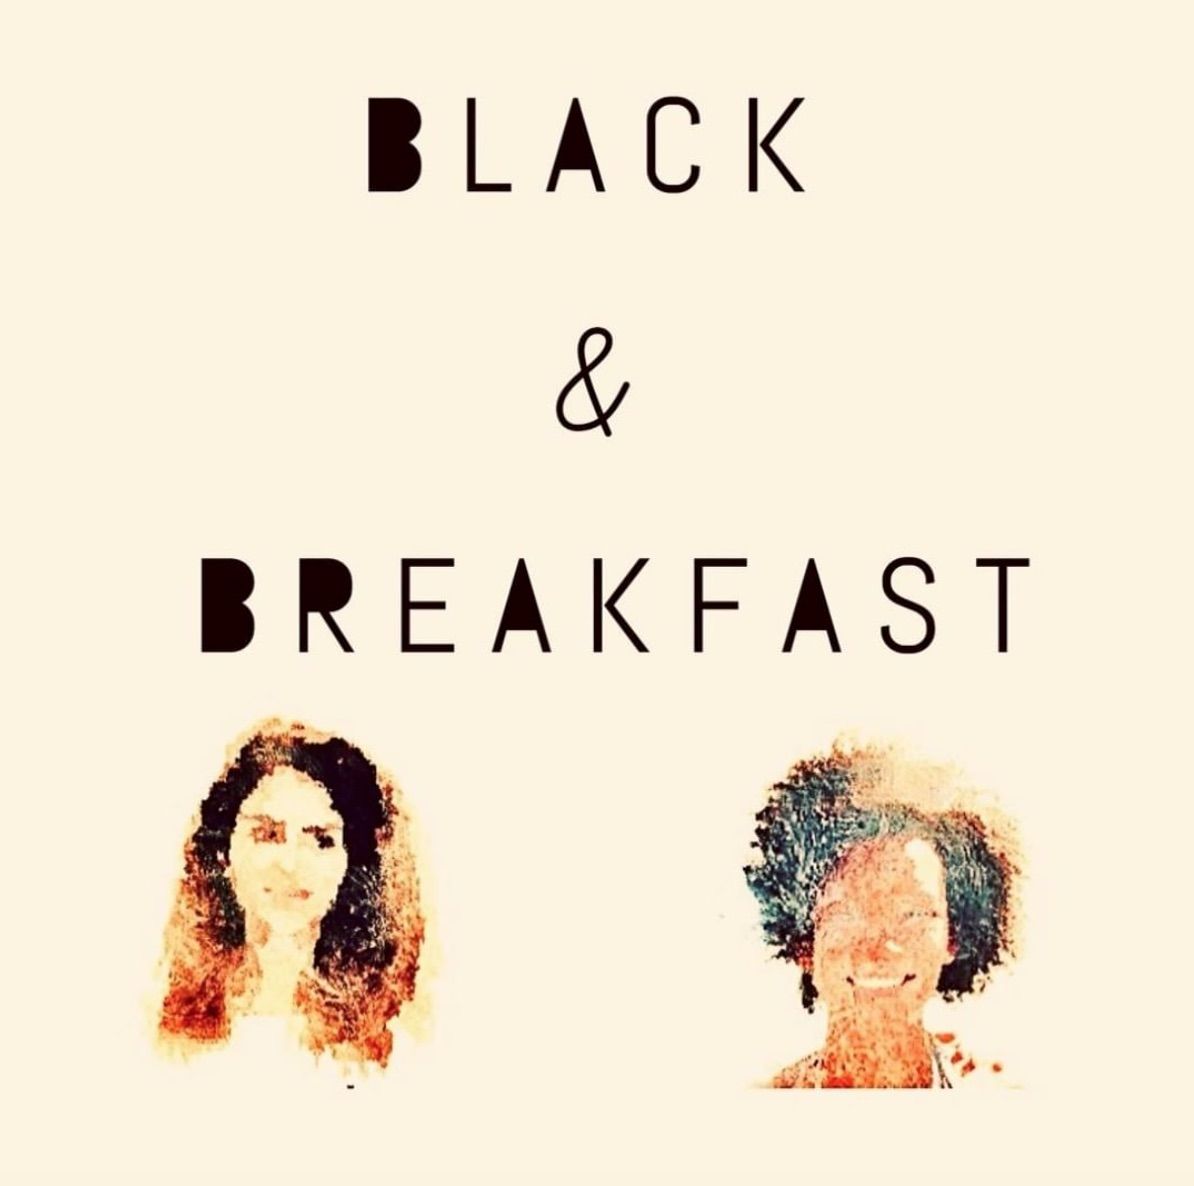 Afrodeusche Podcast Black&Breakfast